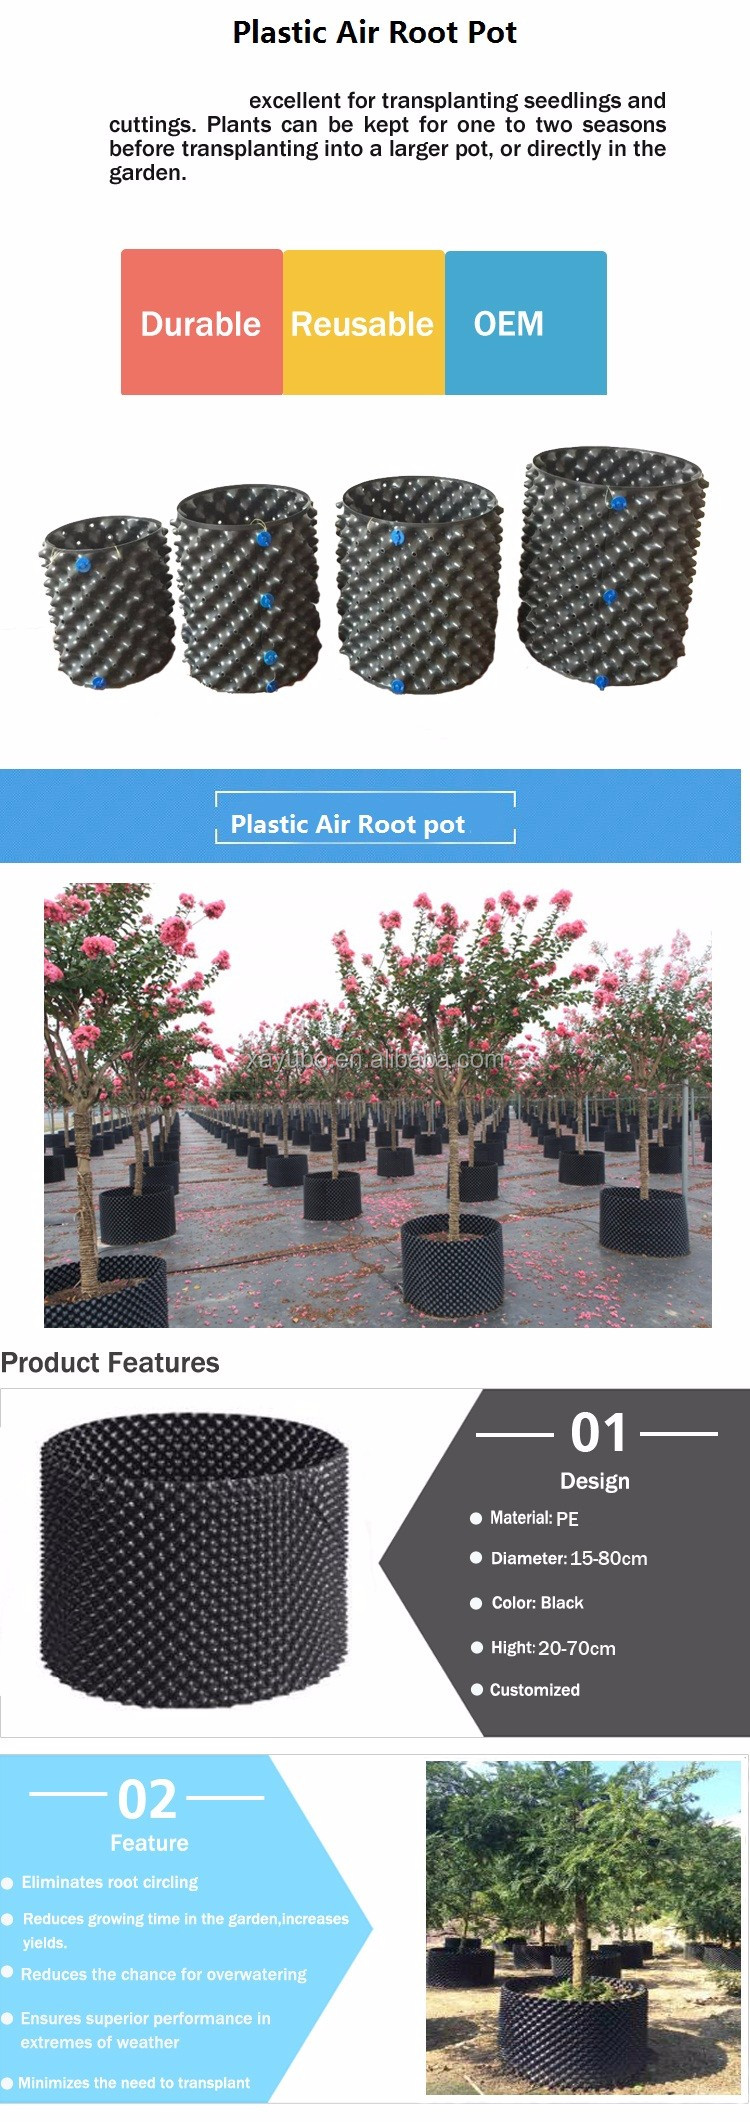 greenhouse garden plastic smart pot